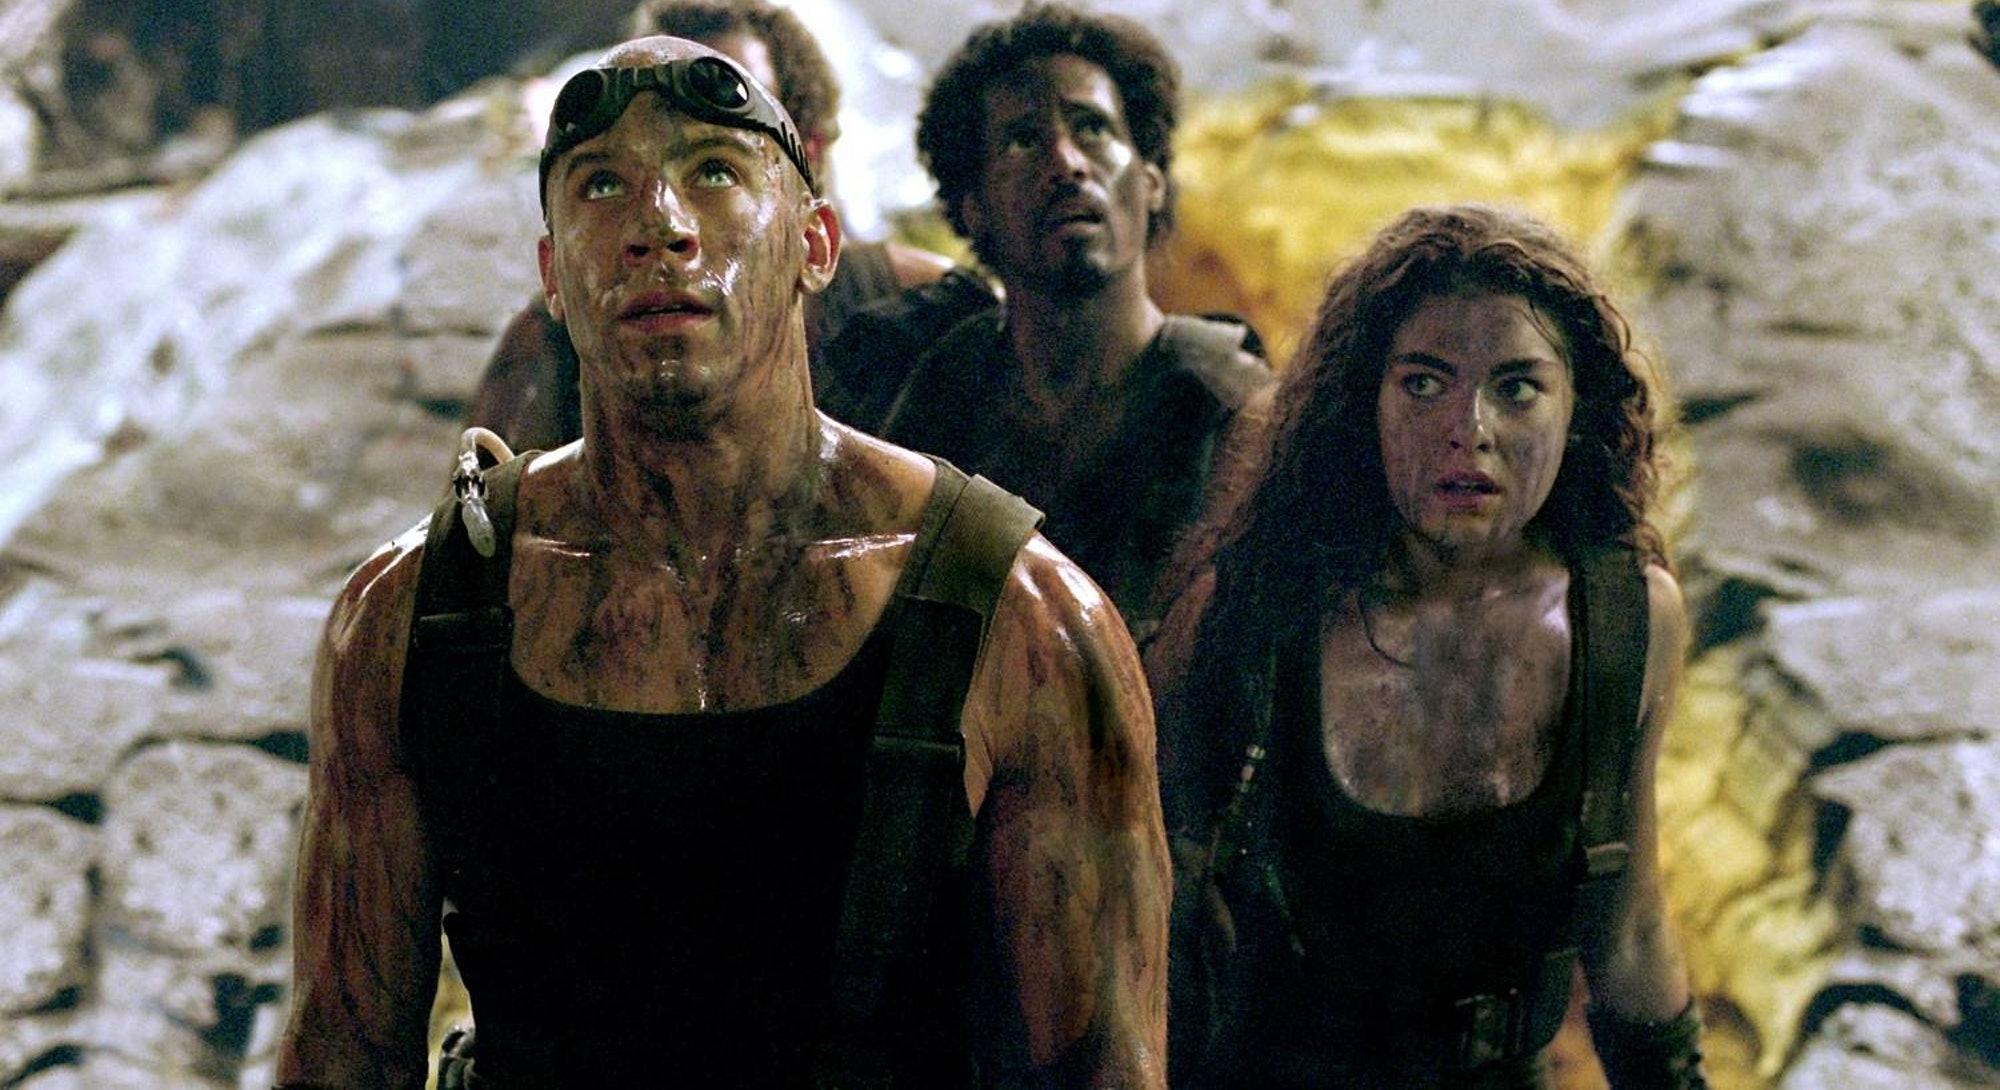 vin diesel with goggles on head looking up in chronicles of riddick